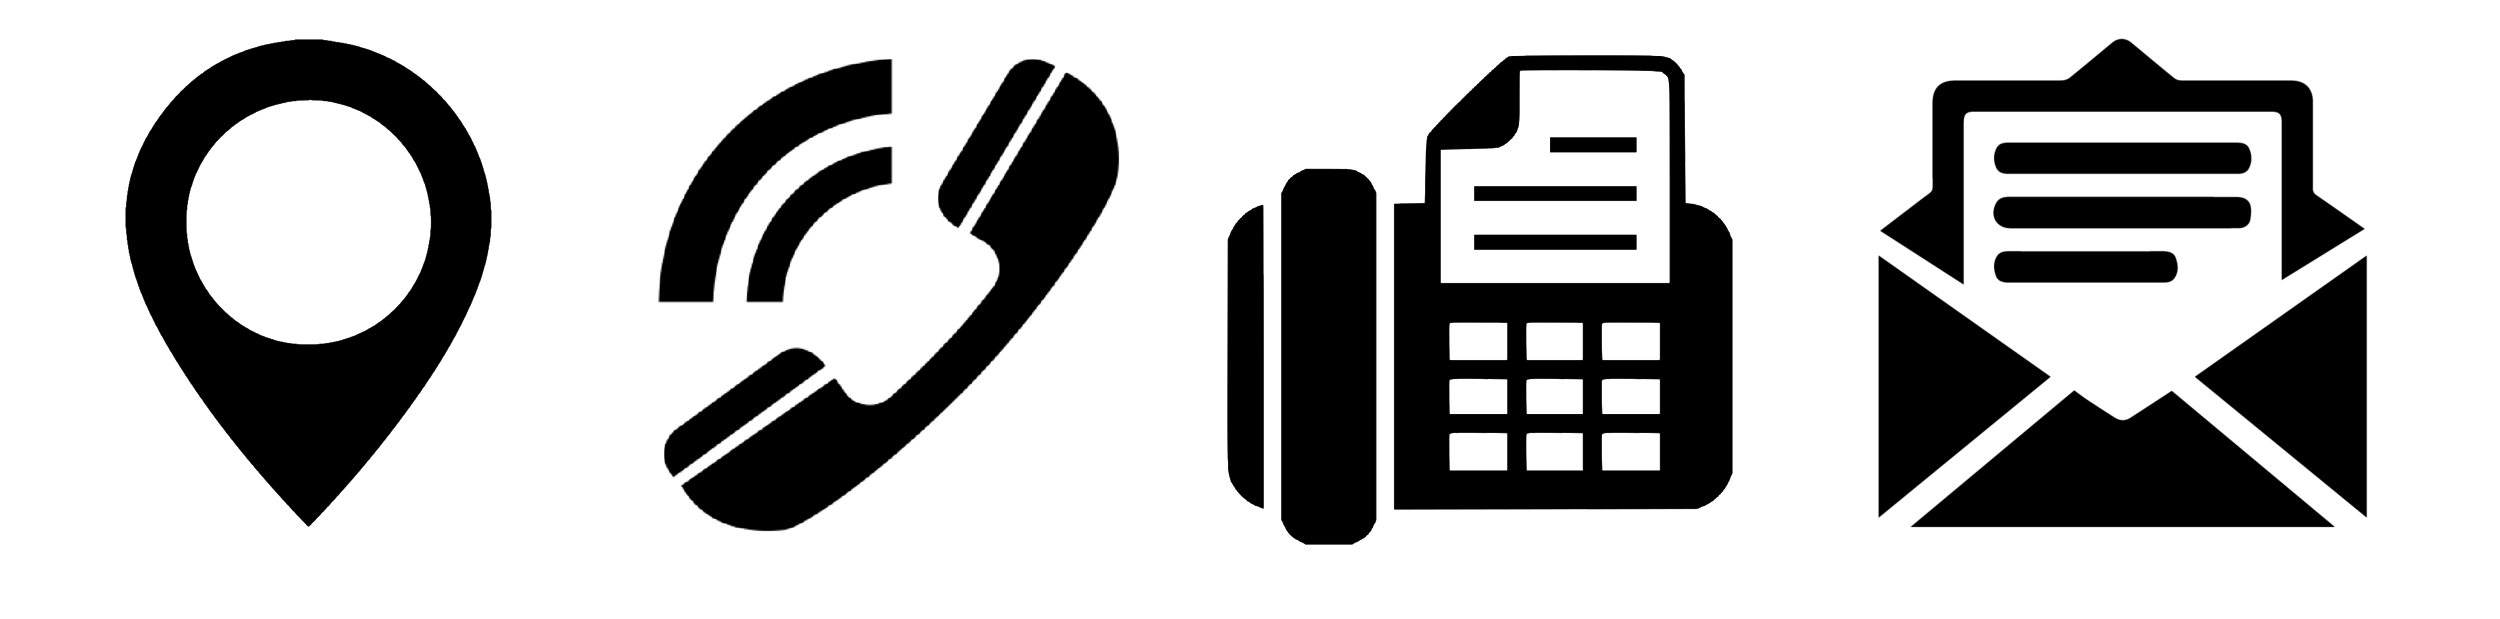 CONTACT ICONS-01.png